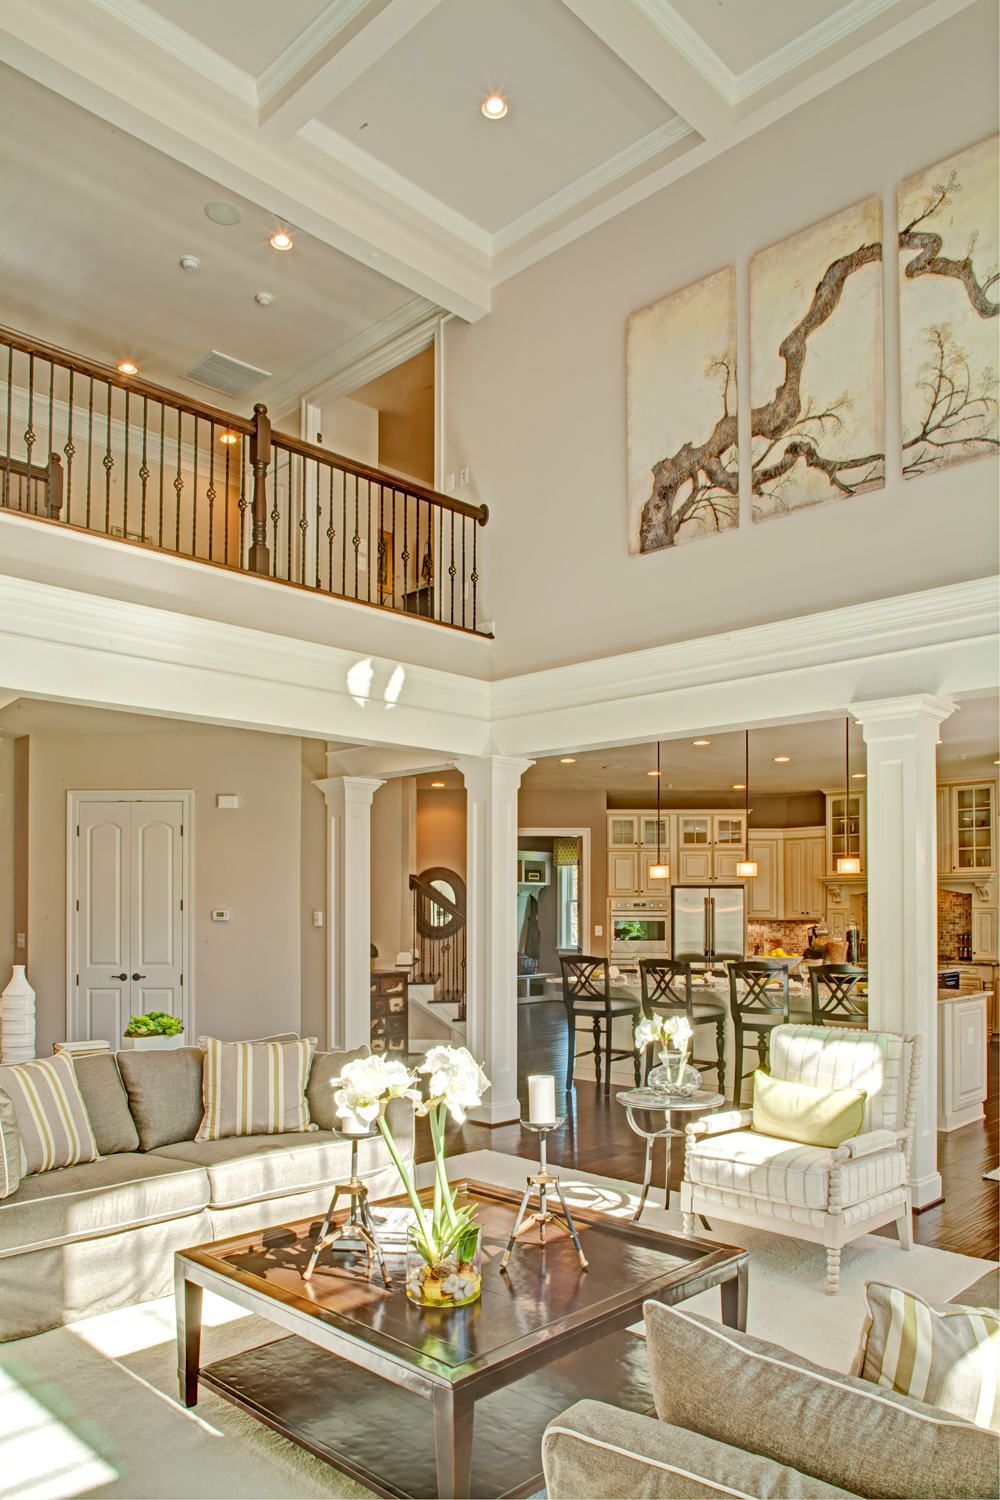 Decorating High Ceiling Walls 2 Story Family Room Decorating Ideas Http Hdwallpaperinfo 2